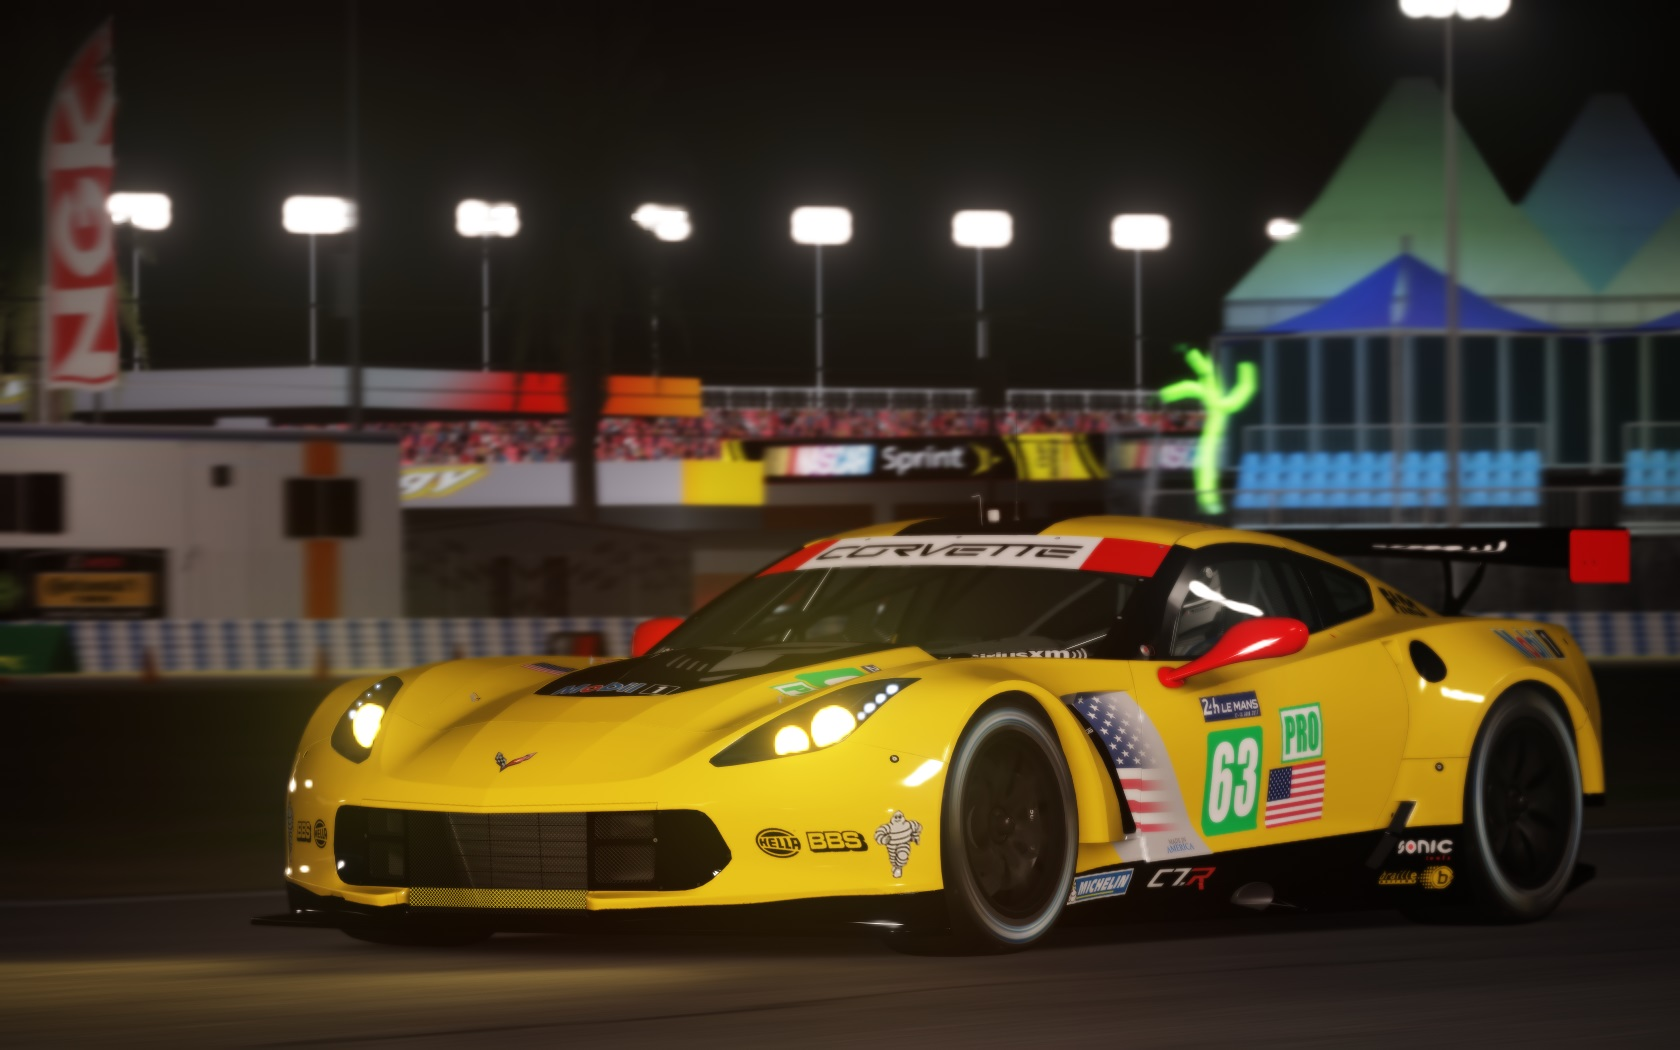 Screenshot_ks_corvette_c7r_daytona_2017_18-12-118-23-36-2.jpg